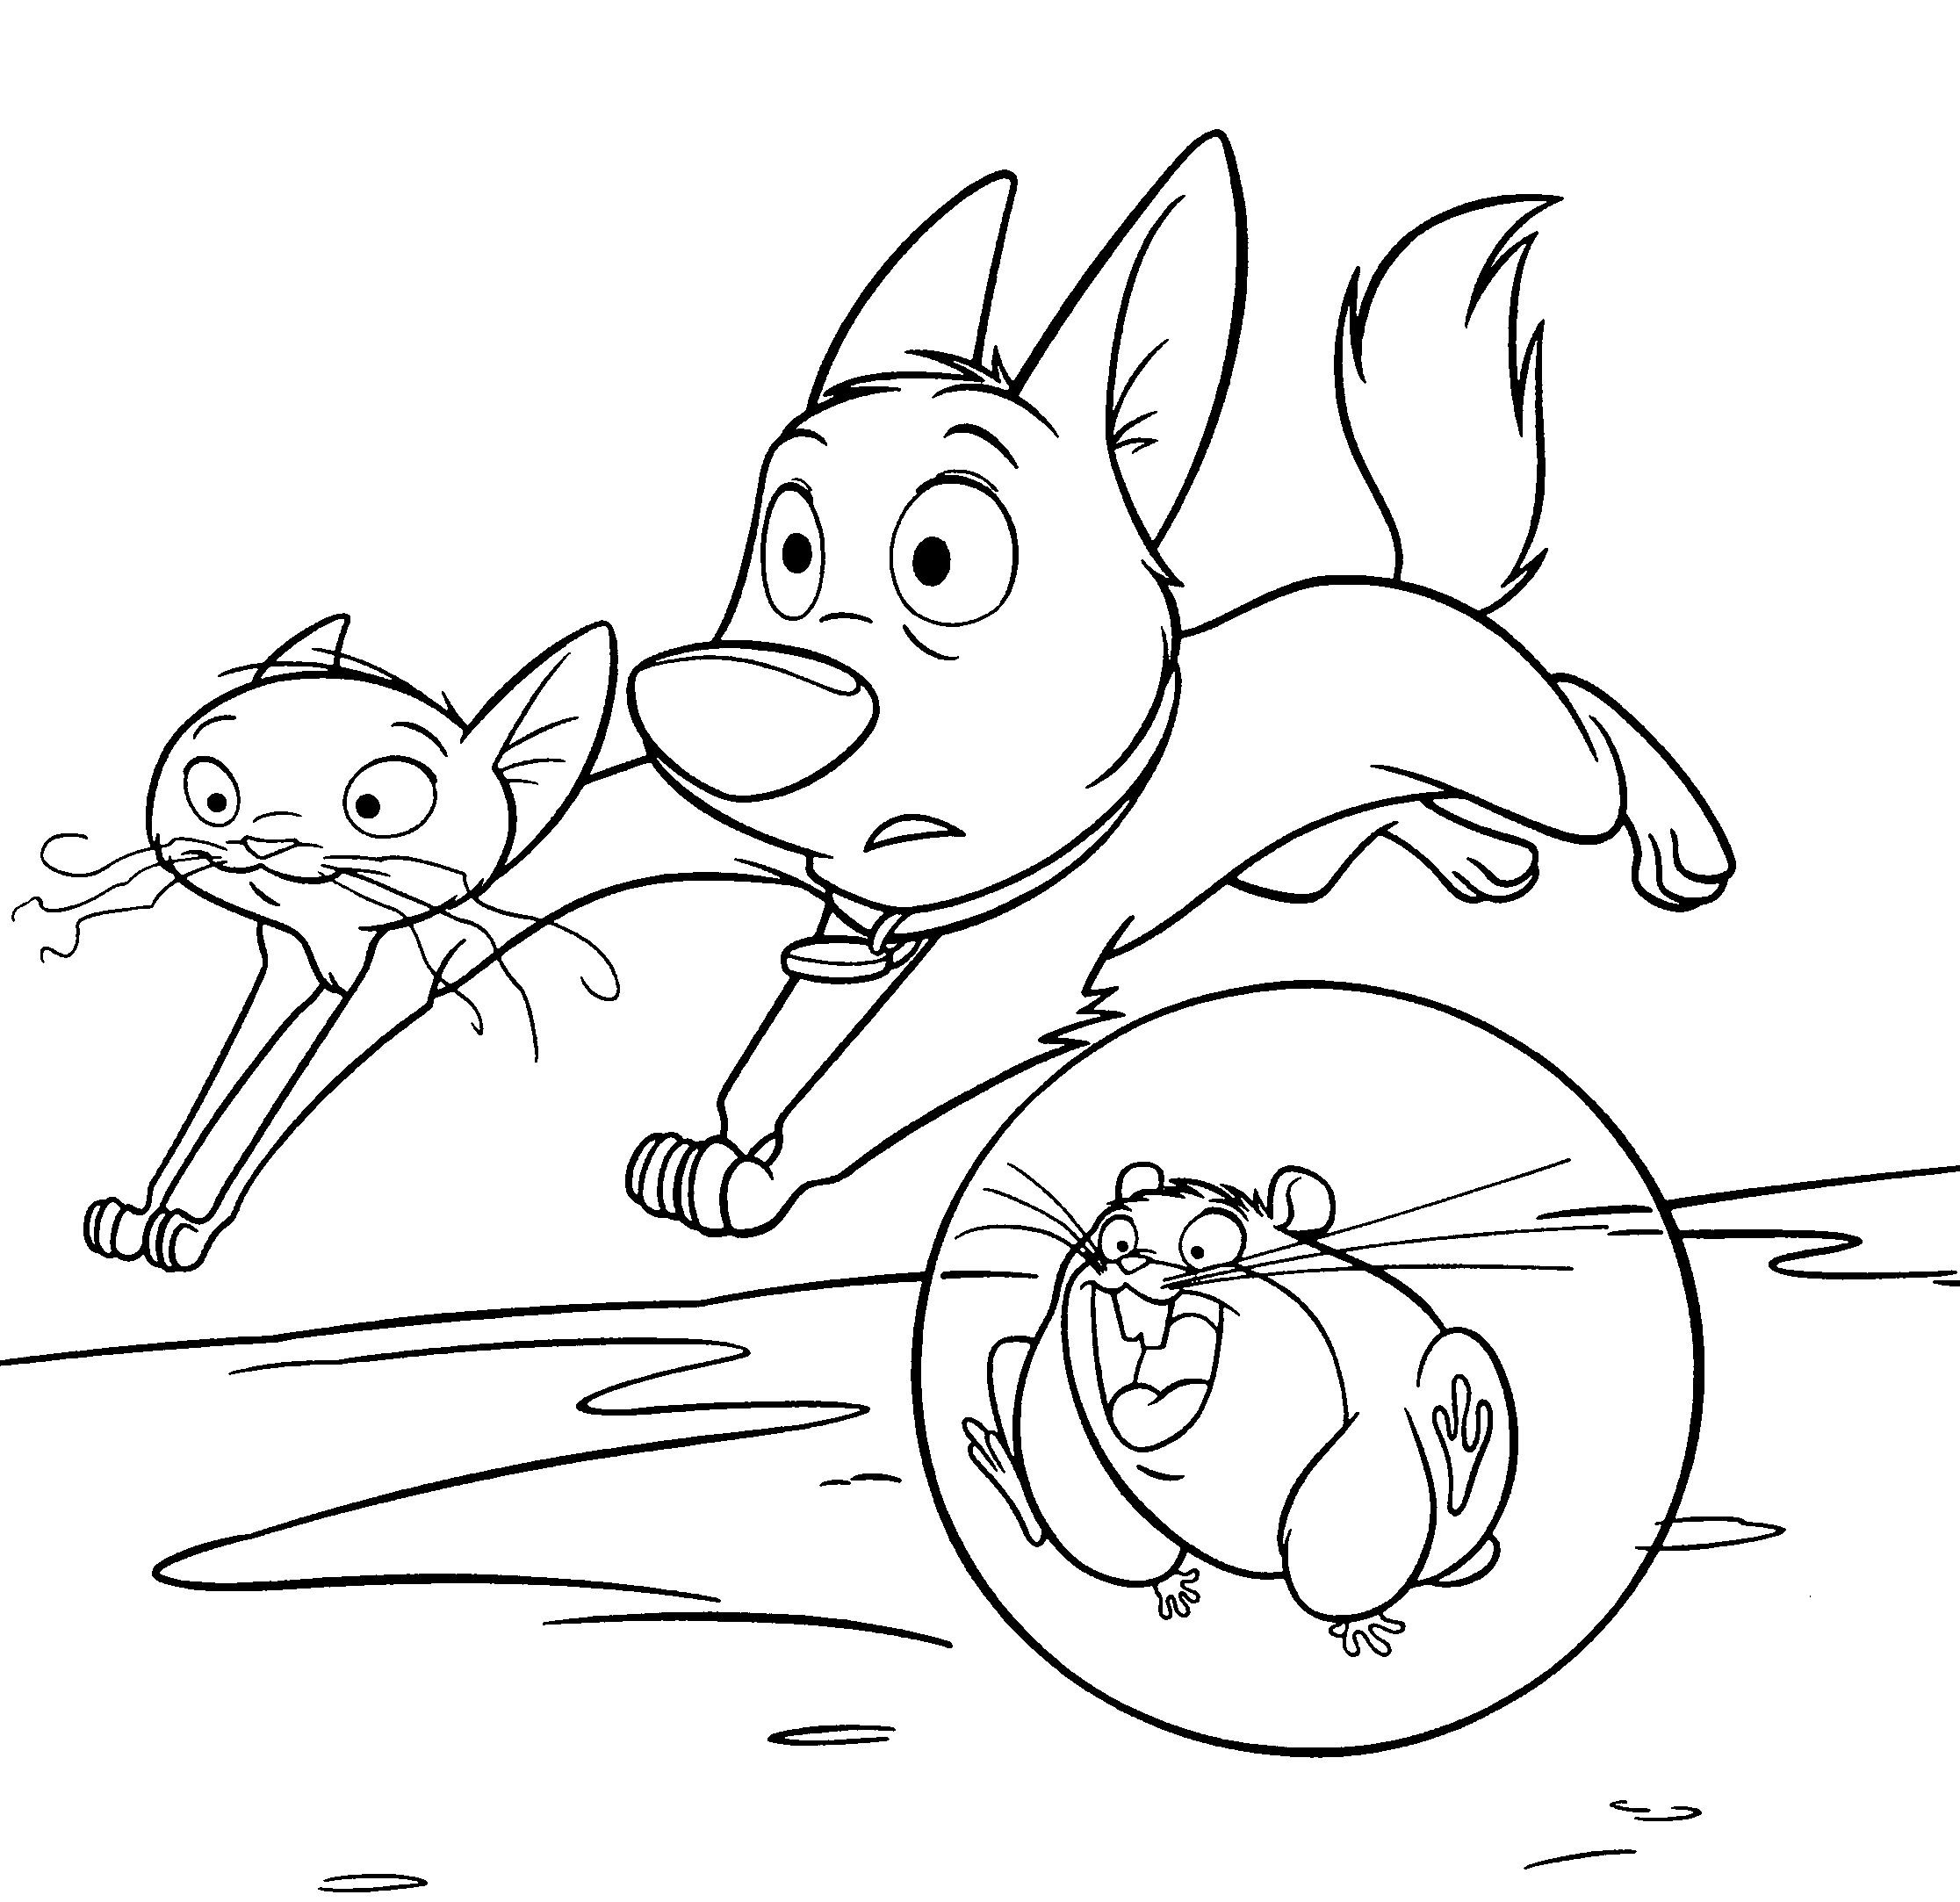 Bolt And Cat Jumping Coloring Page - Bolt car coloring pages ...